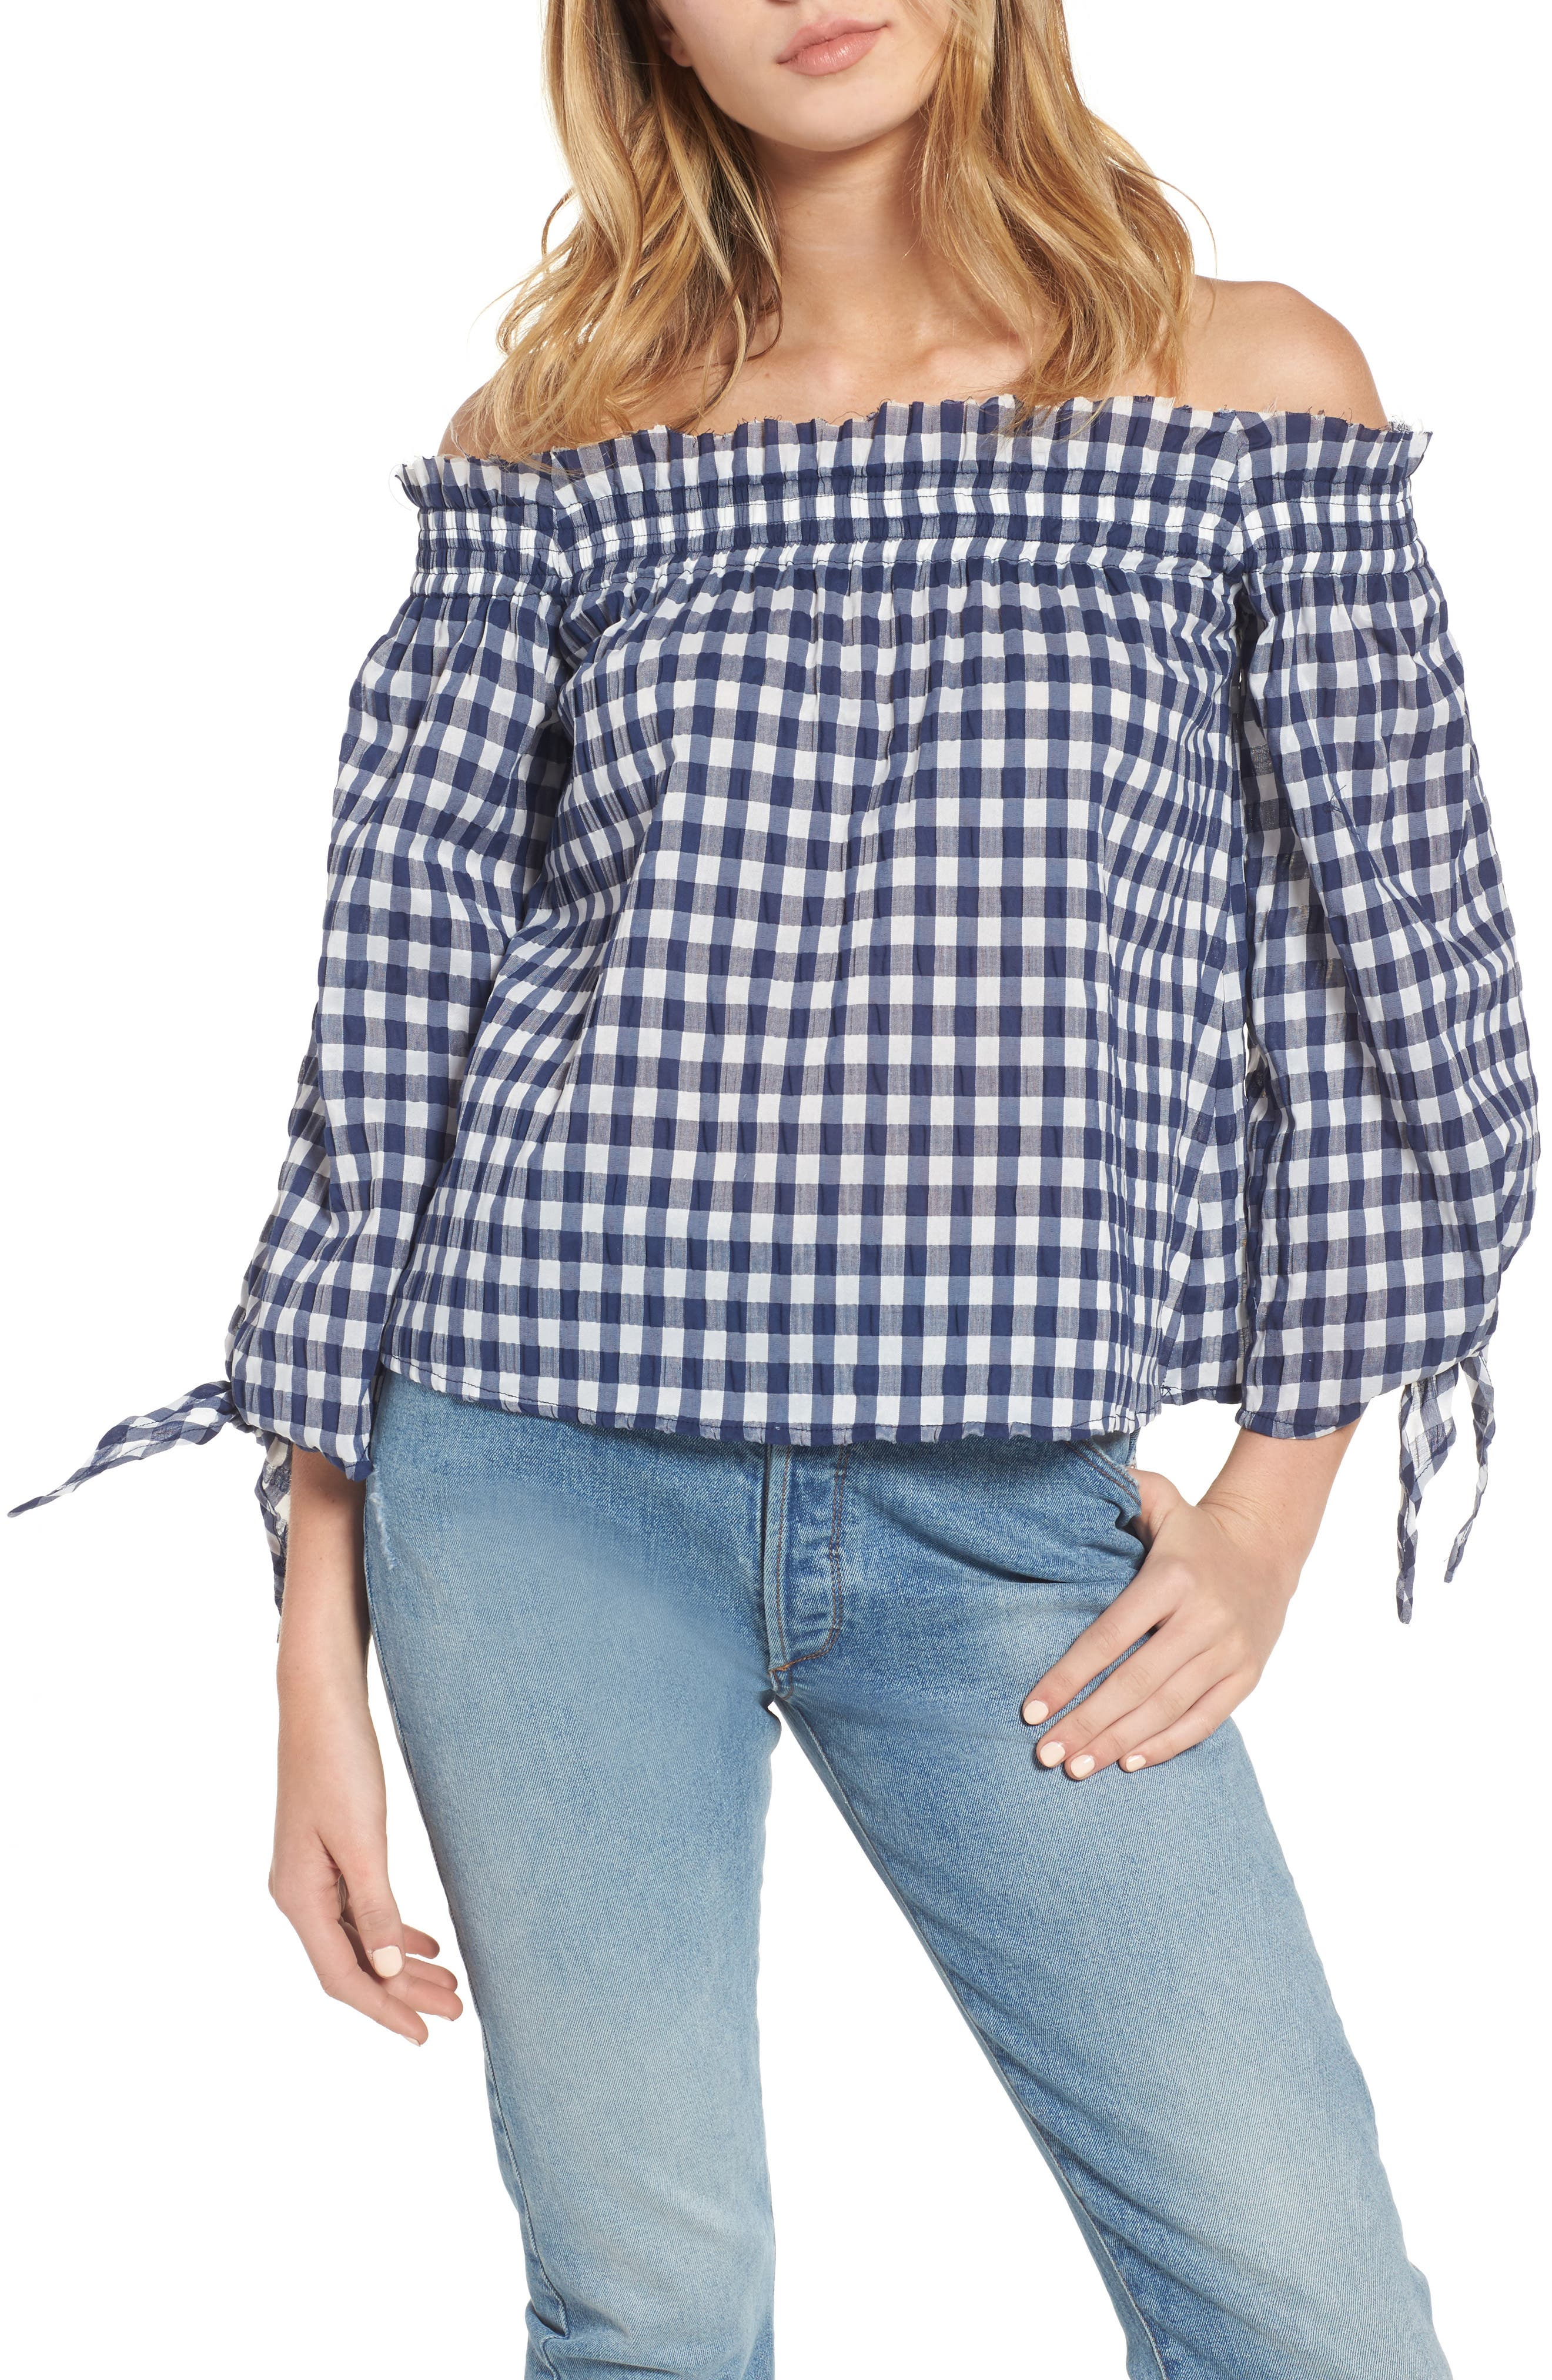 McGuire Pina Gingham Off the Shoulder Top